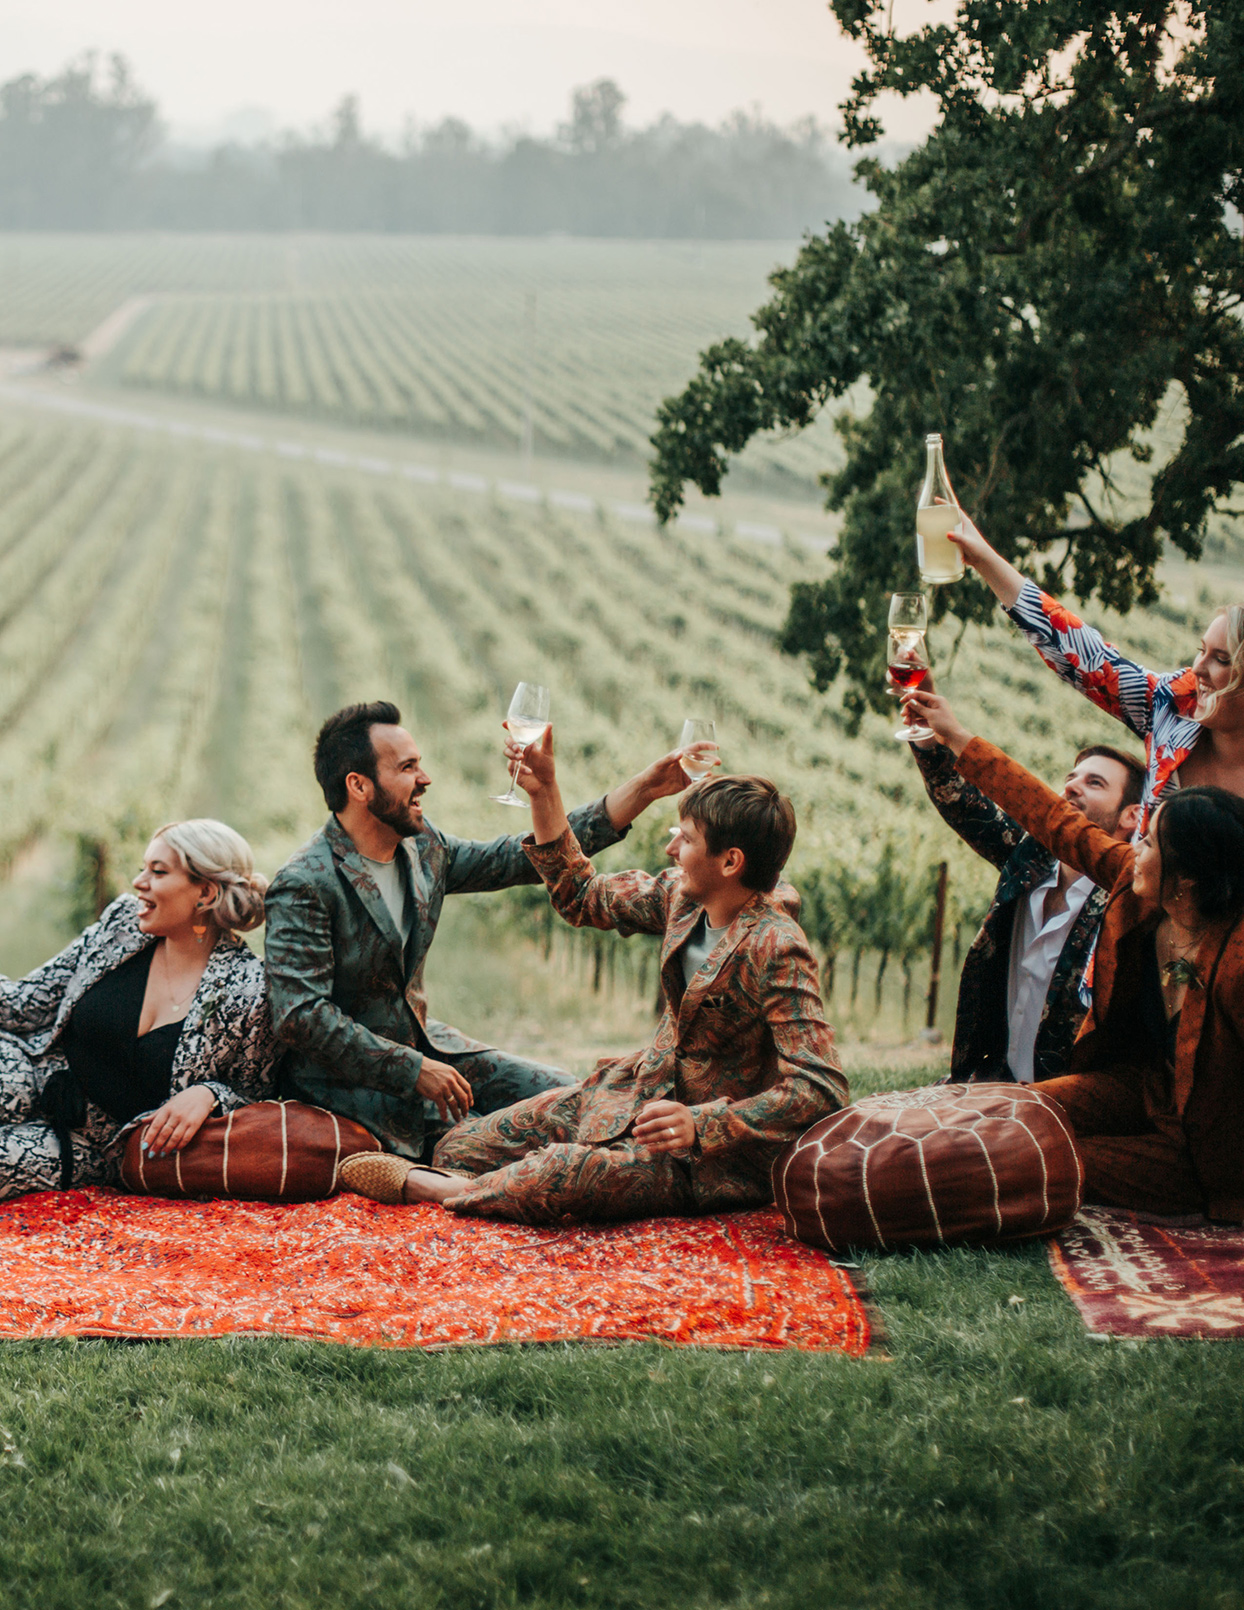 austin alex wedding couple toasting on Moroccan rugs